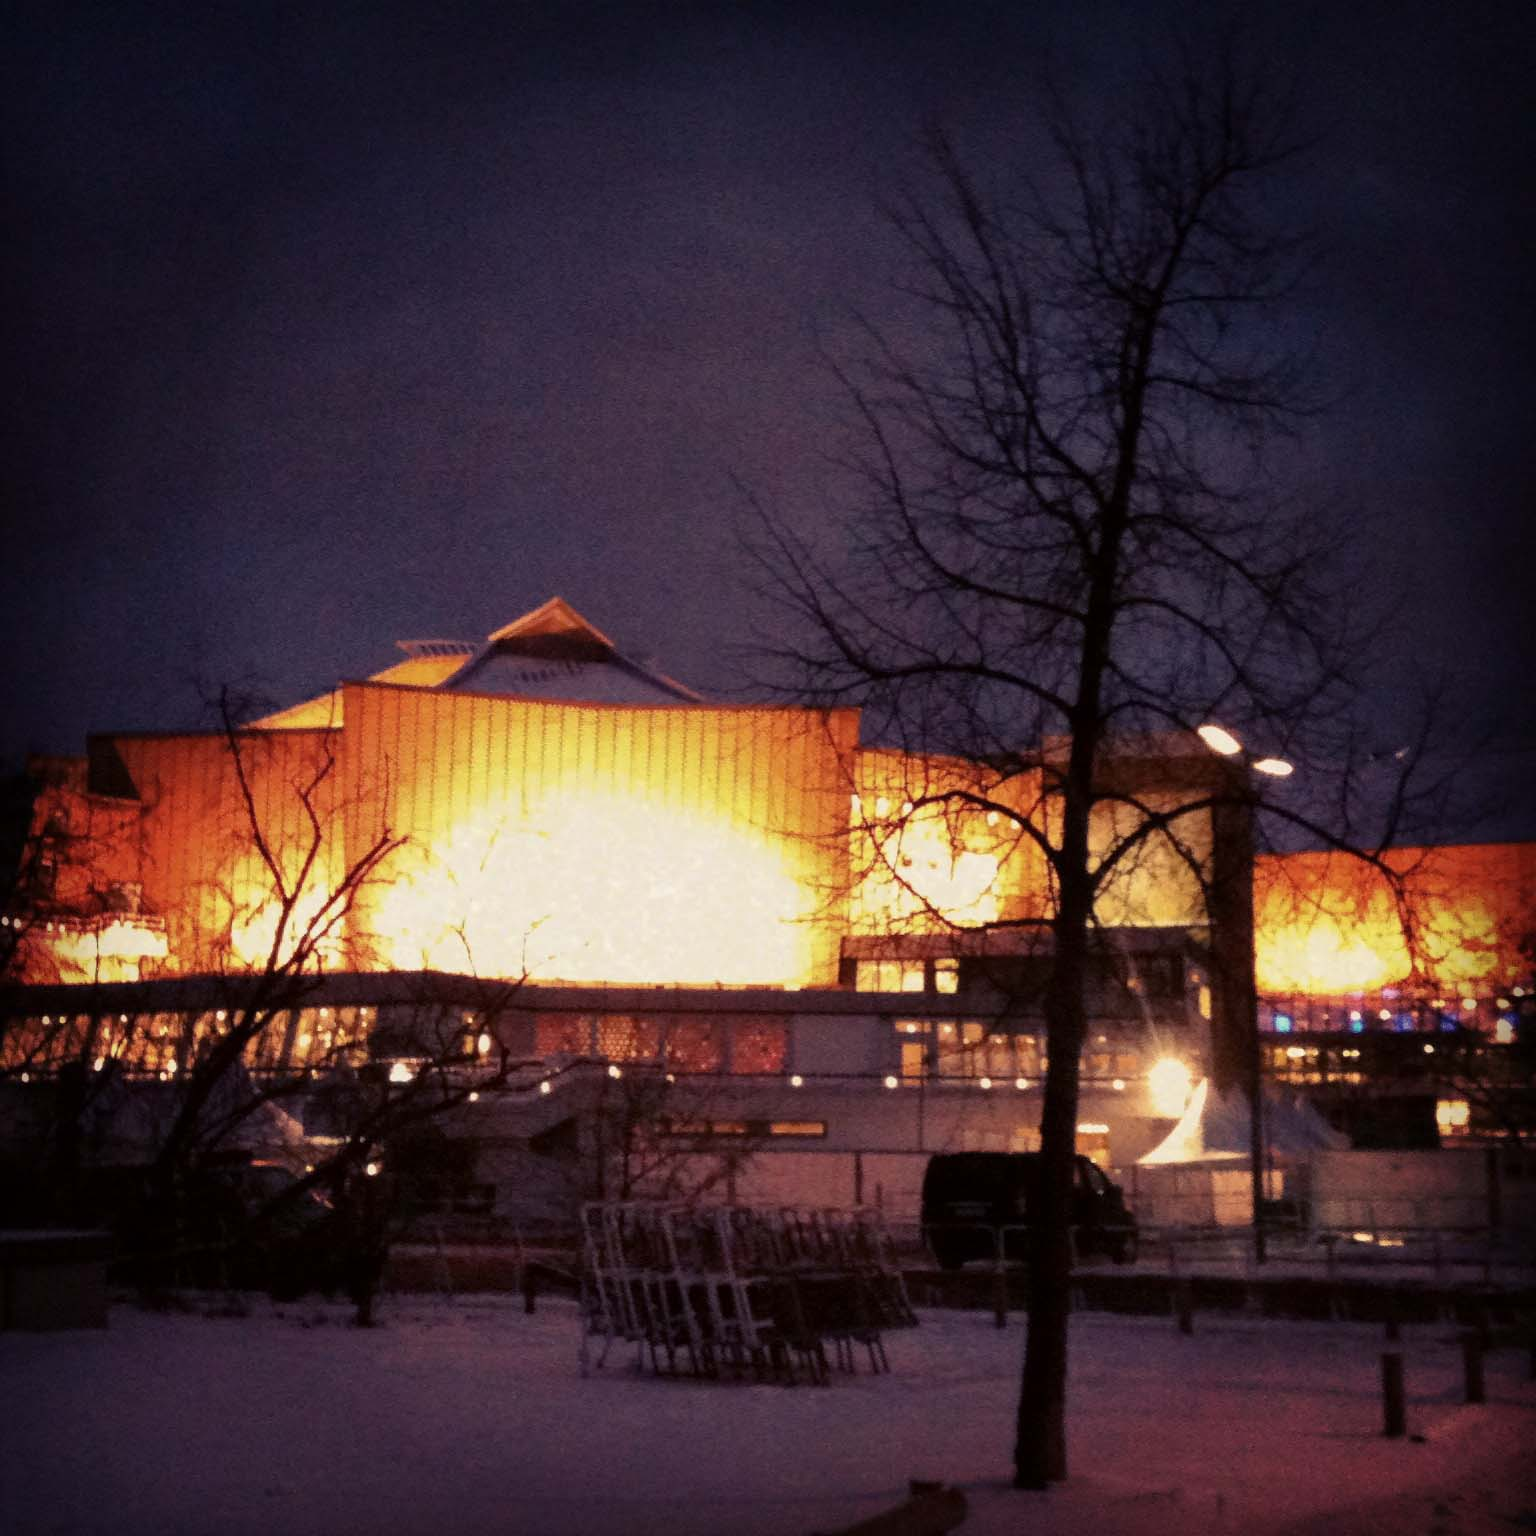 Berliner Philharmonie - The Berlin Philharmonic Hall at dusk on a snowy cold day